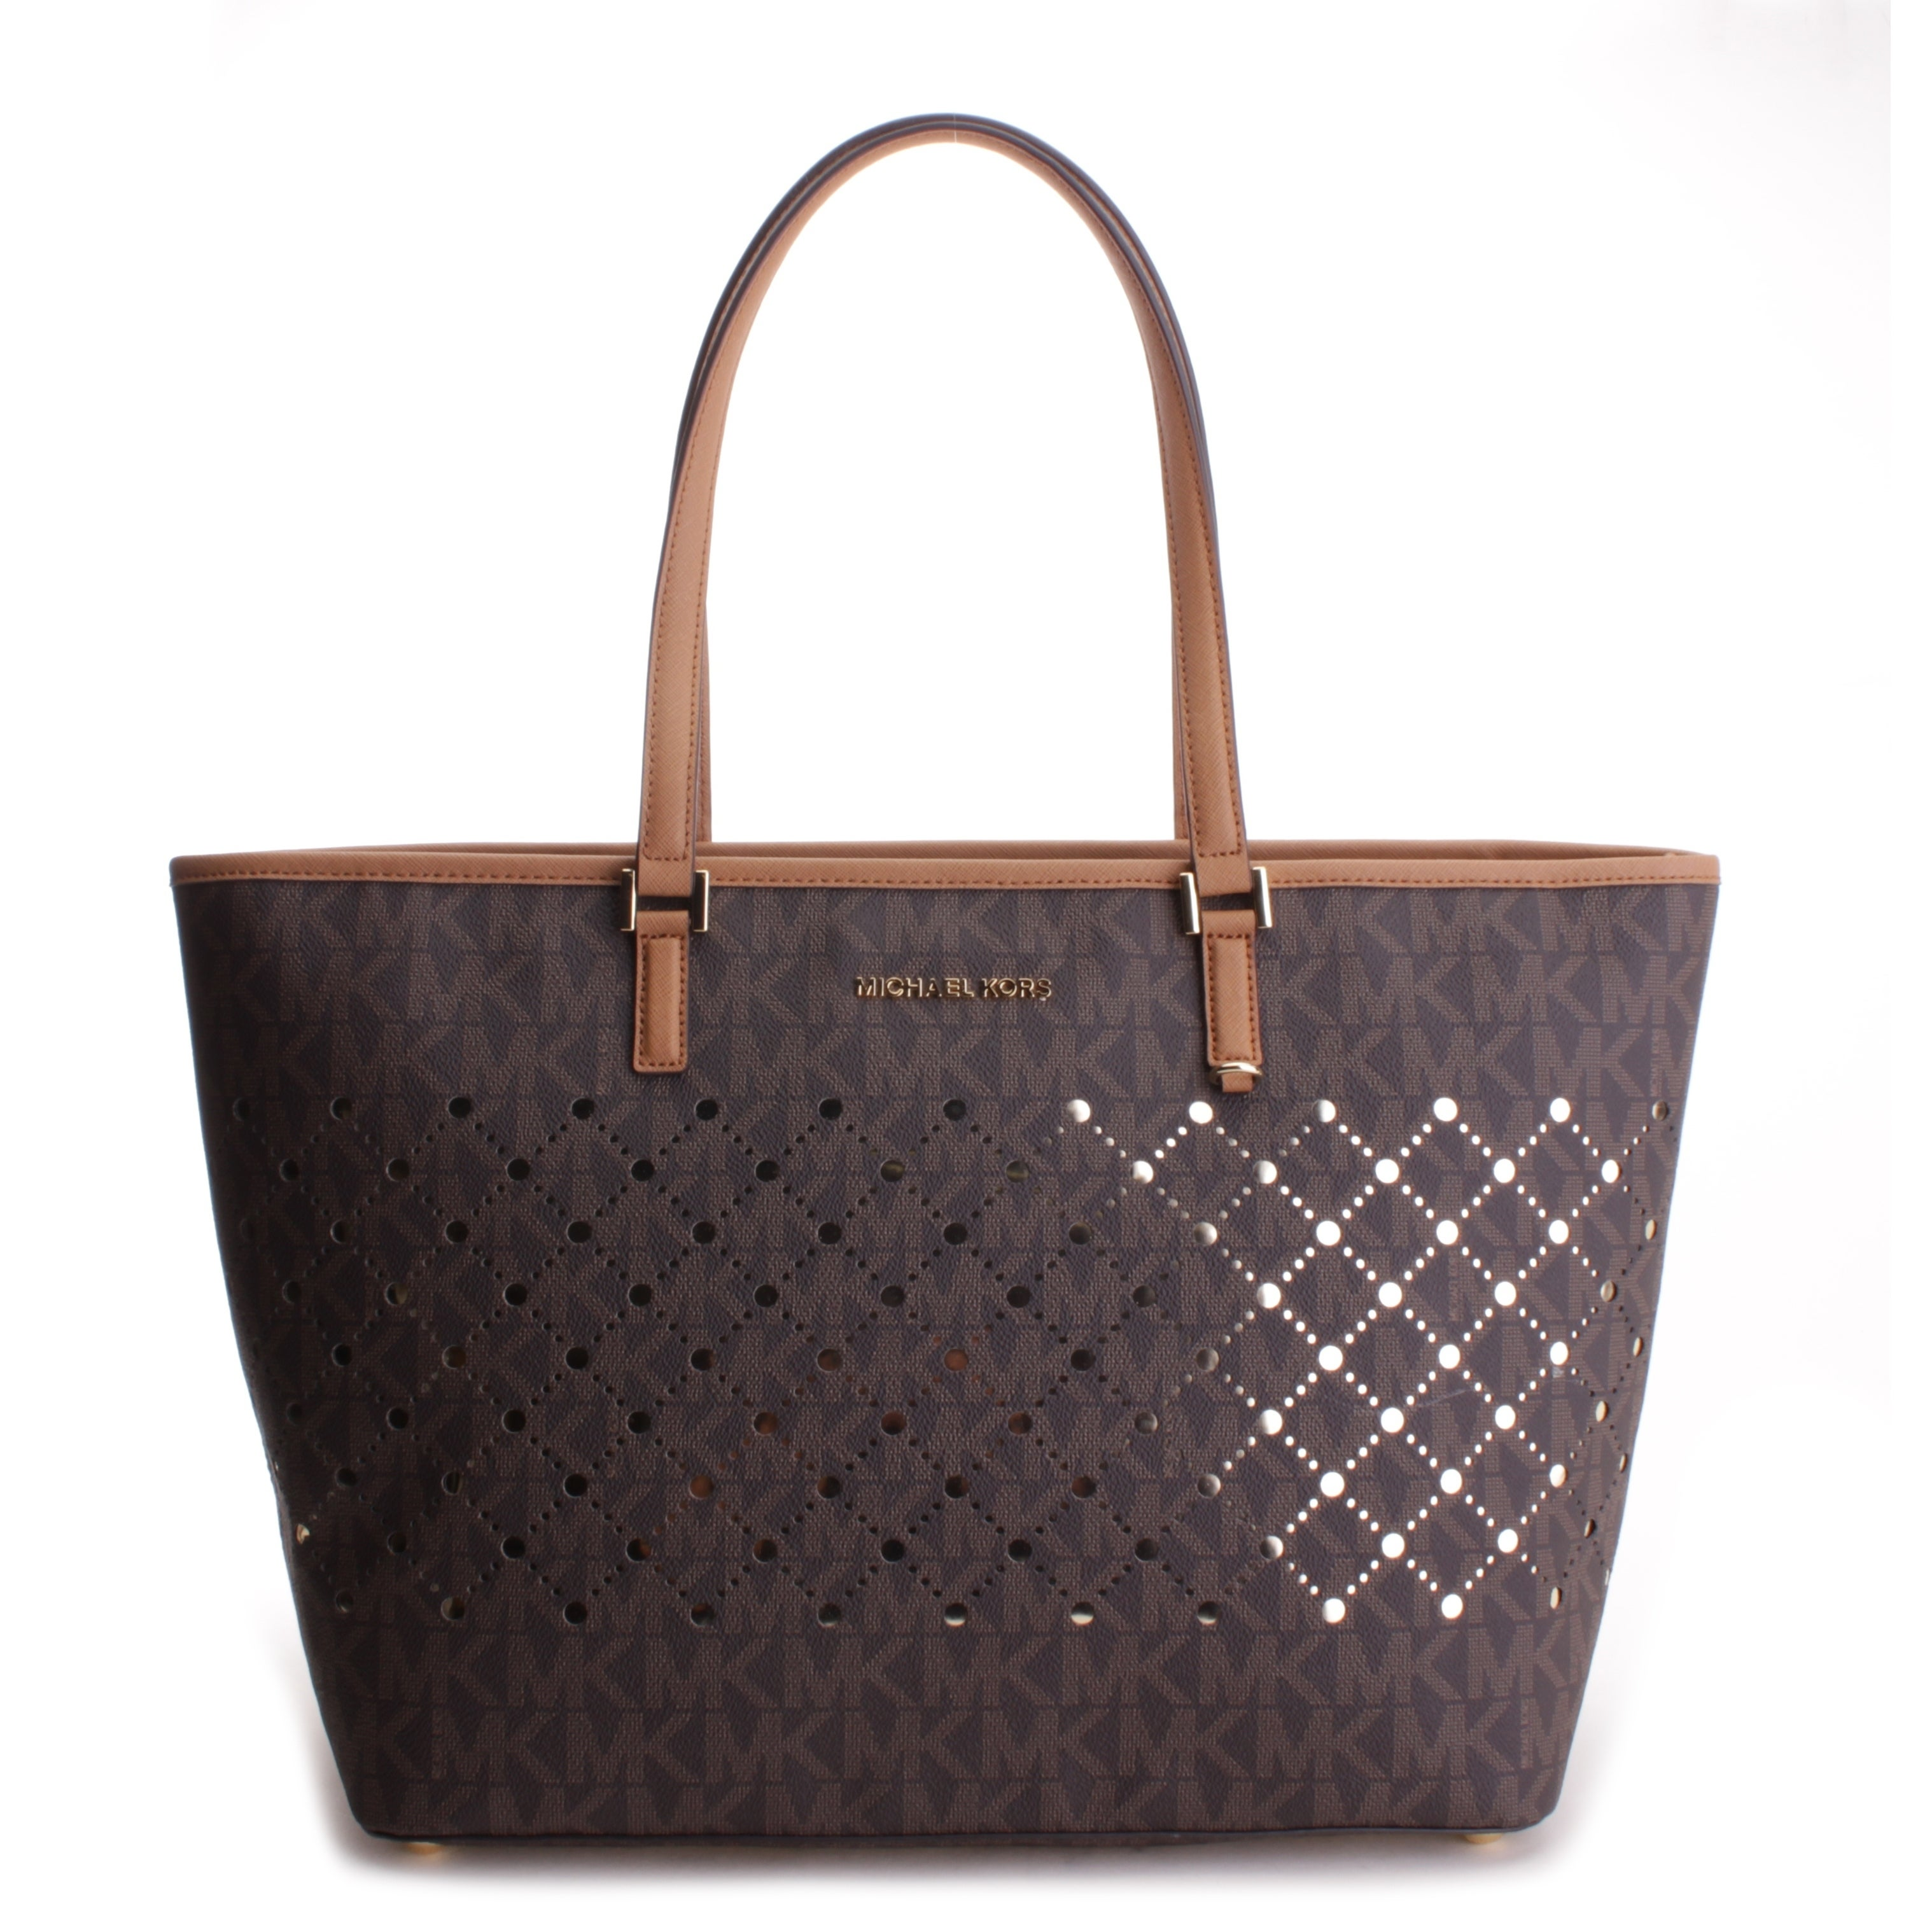 df950f1b6 Shop Michael Kors Women's Violet - Jet Set Travel Large Carryall Tote -  Free Shipping Today - Overstock - 28443130